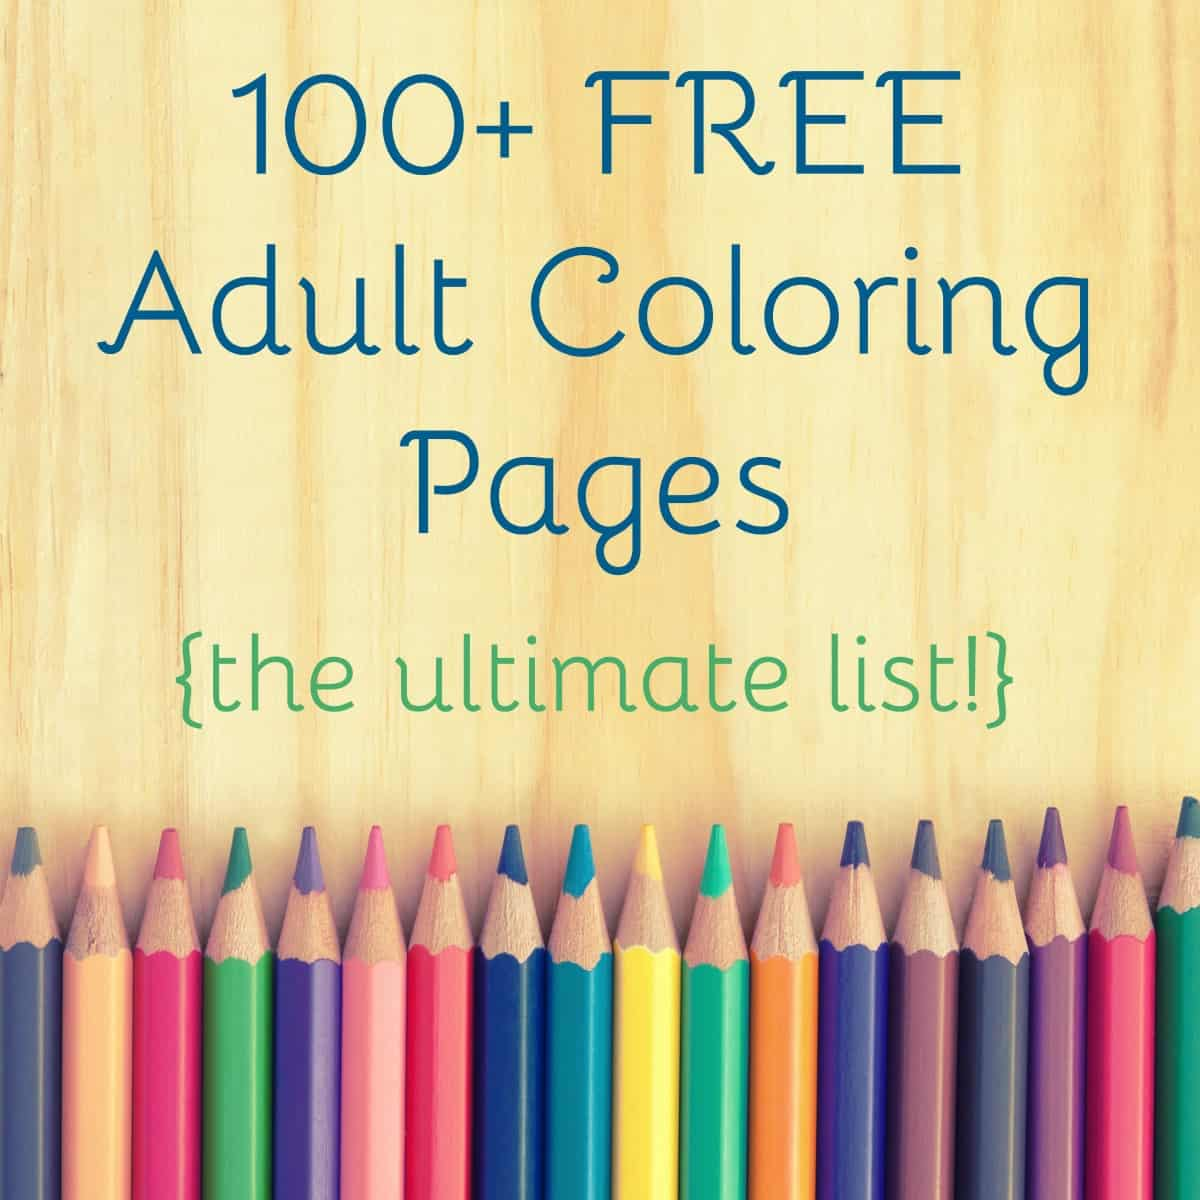 Free coloring pages for adults quotes - Get Links To Over 100 Free Coloring Pages You Ll Love These Favorites Including